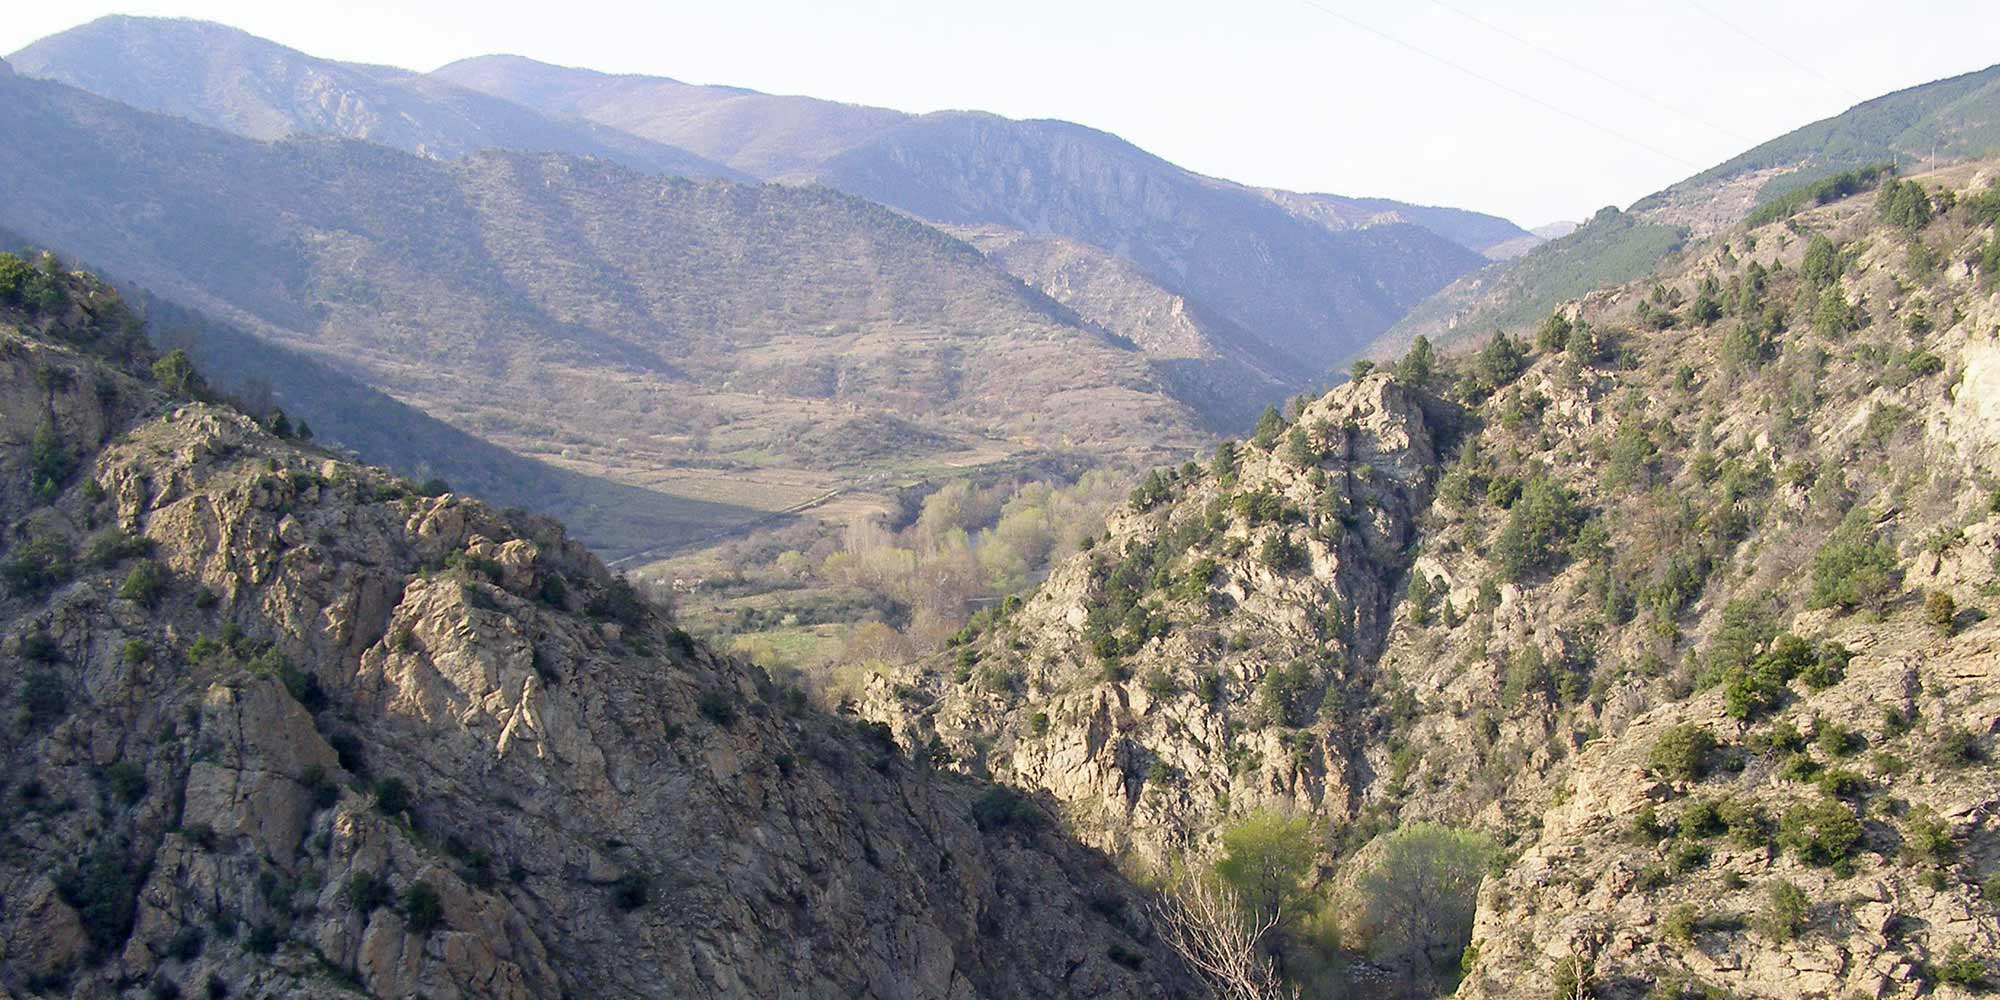 Panorama picture in the Kresna gorge in Bulgaria.